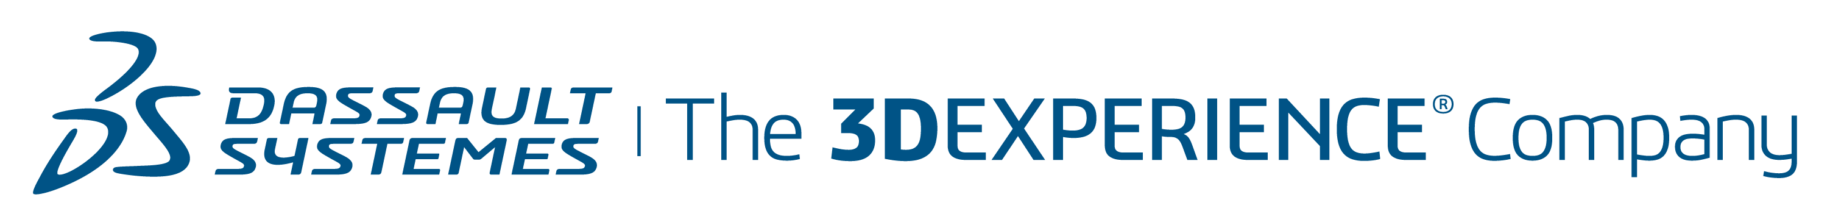 Dassault Systemes The 3D Experience Company